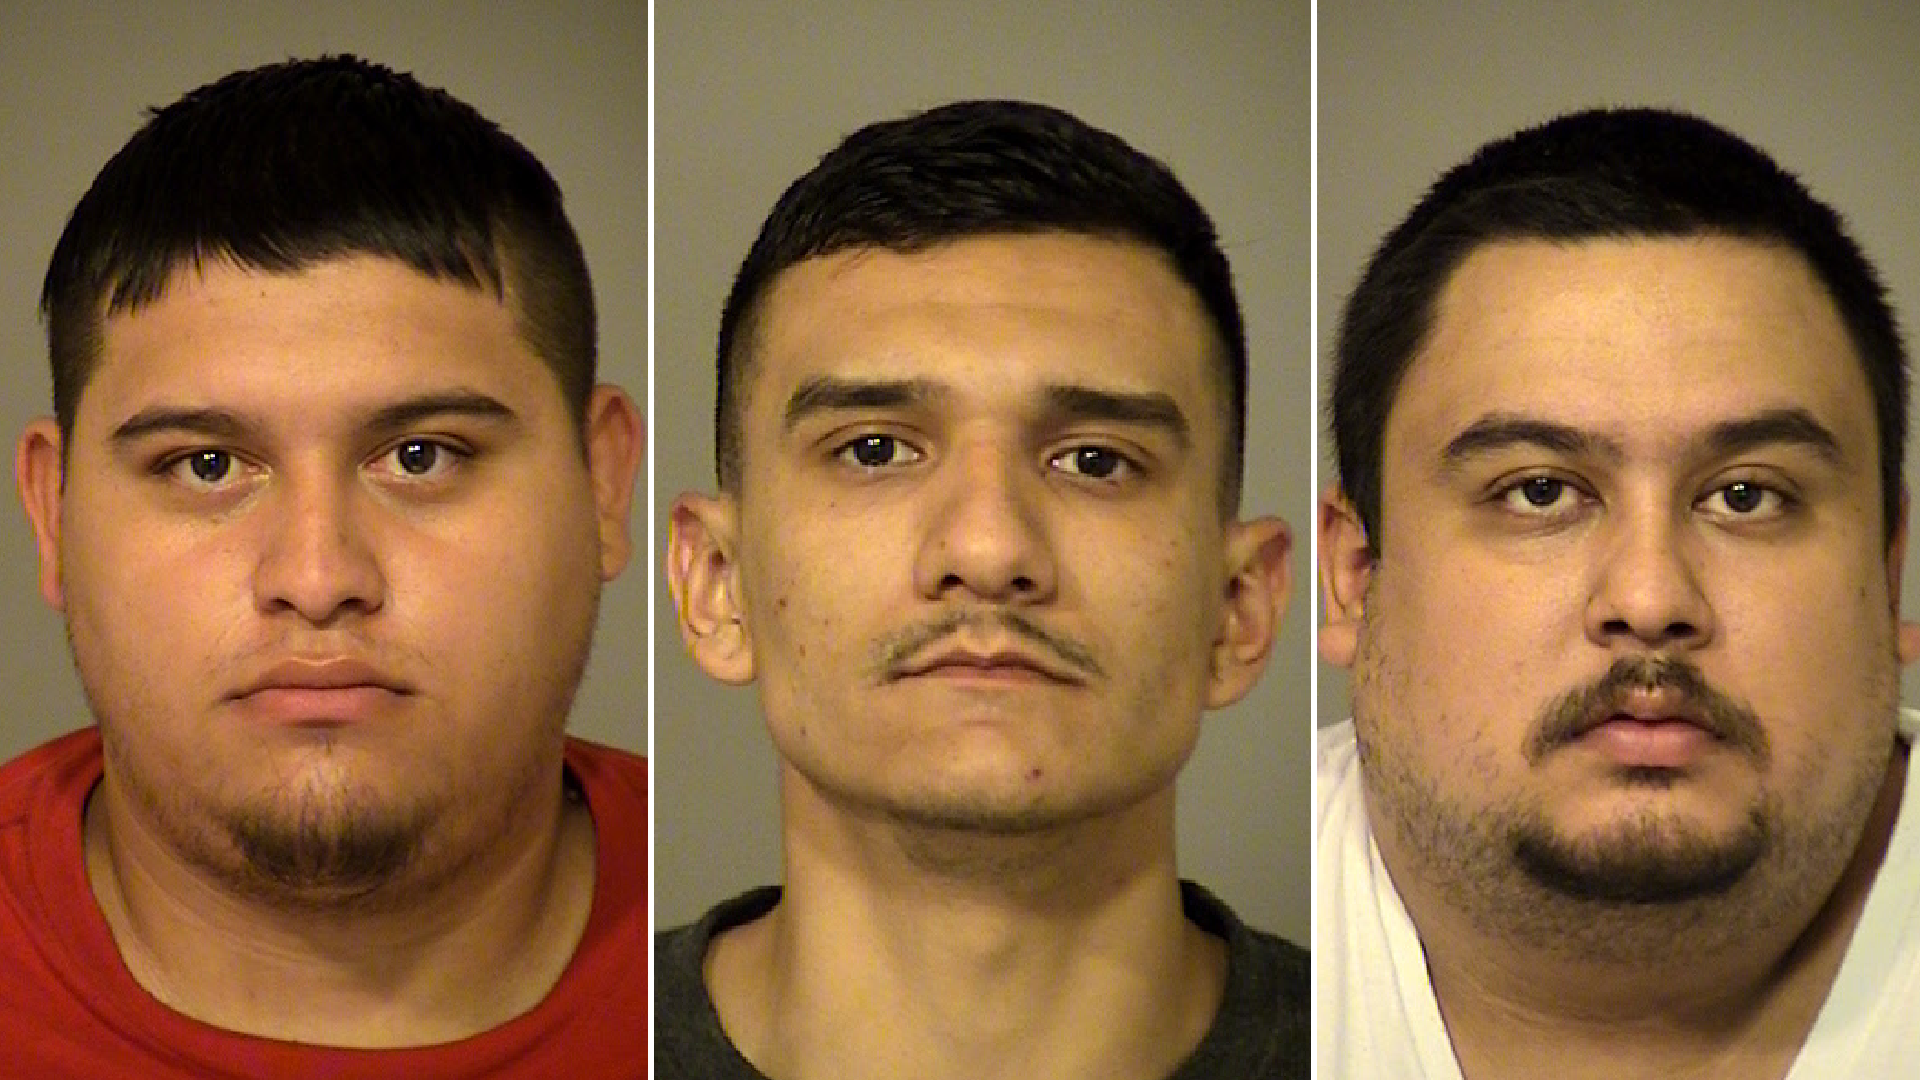 Larry Garcia, 21, Byron Lopez, 22, and Luis Bidriezca, 25, are seen in booking photos provided by the Ventura County Sheriff's Office.